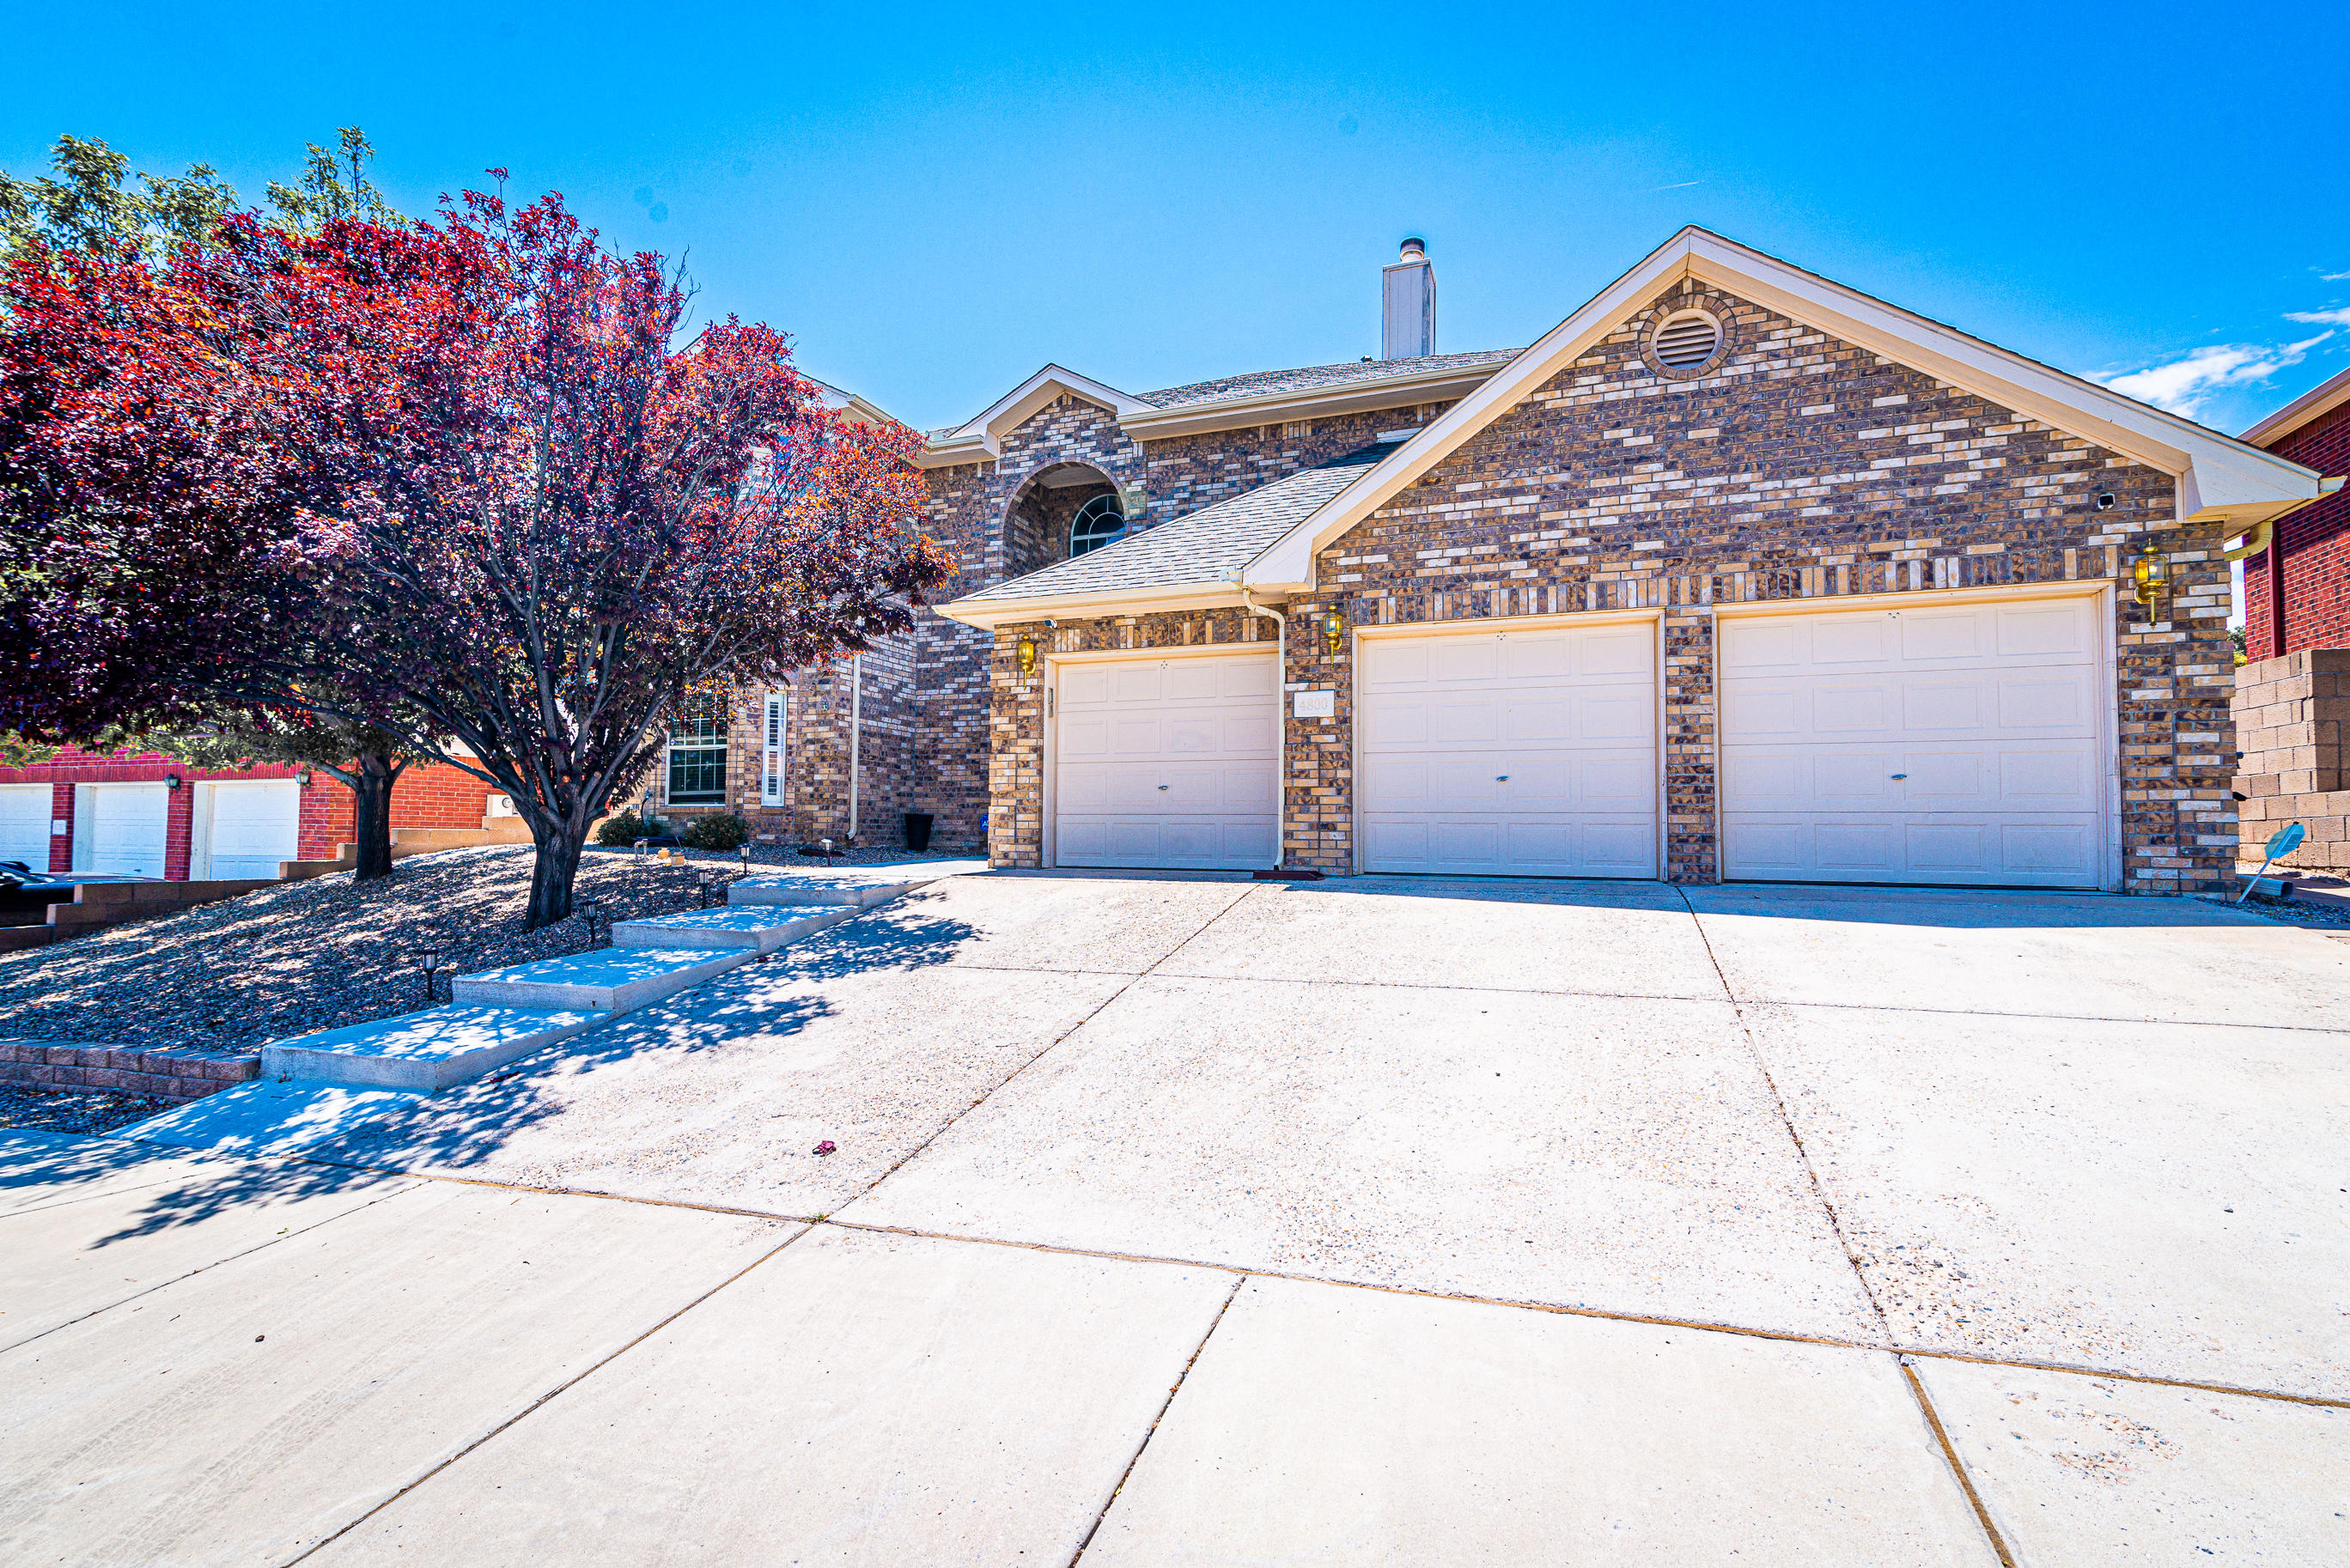 This is a must see Oppel Jenkins Brick Beauty in the NW. Soaring ceilings in the formal living area with arch leading for formal dining room. Cozy up next to the gas fireplace in the family room which has a beautiful modern neutral color on the walls. Kitchen has been updated with new tile, which highlight the clean bright cabinets & center island. Bedroom downstairs perfect for guest with a full bath. Bay windows in 2 of the secondary bedrooms add that extra wall space you need. Master suite has crown molding accents and access to balcony. Master bath is spacious with 2 vanities, garden tub, standing shower and walk in closet. All this and an office/hobby/den area upstairs. Backyard features a wrap around covered patio.